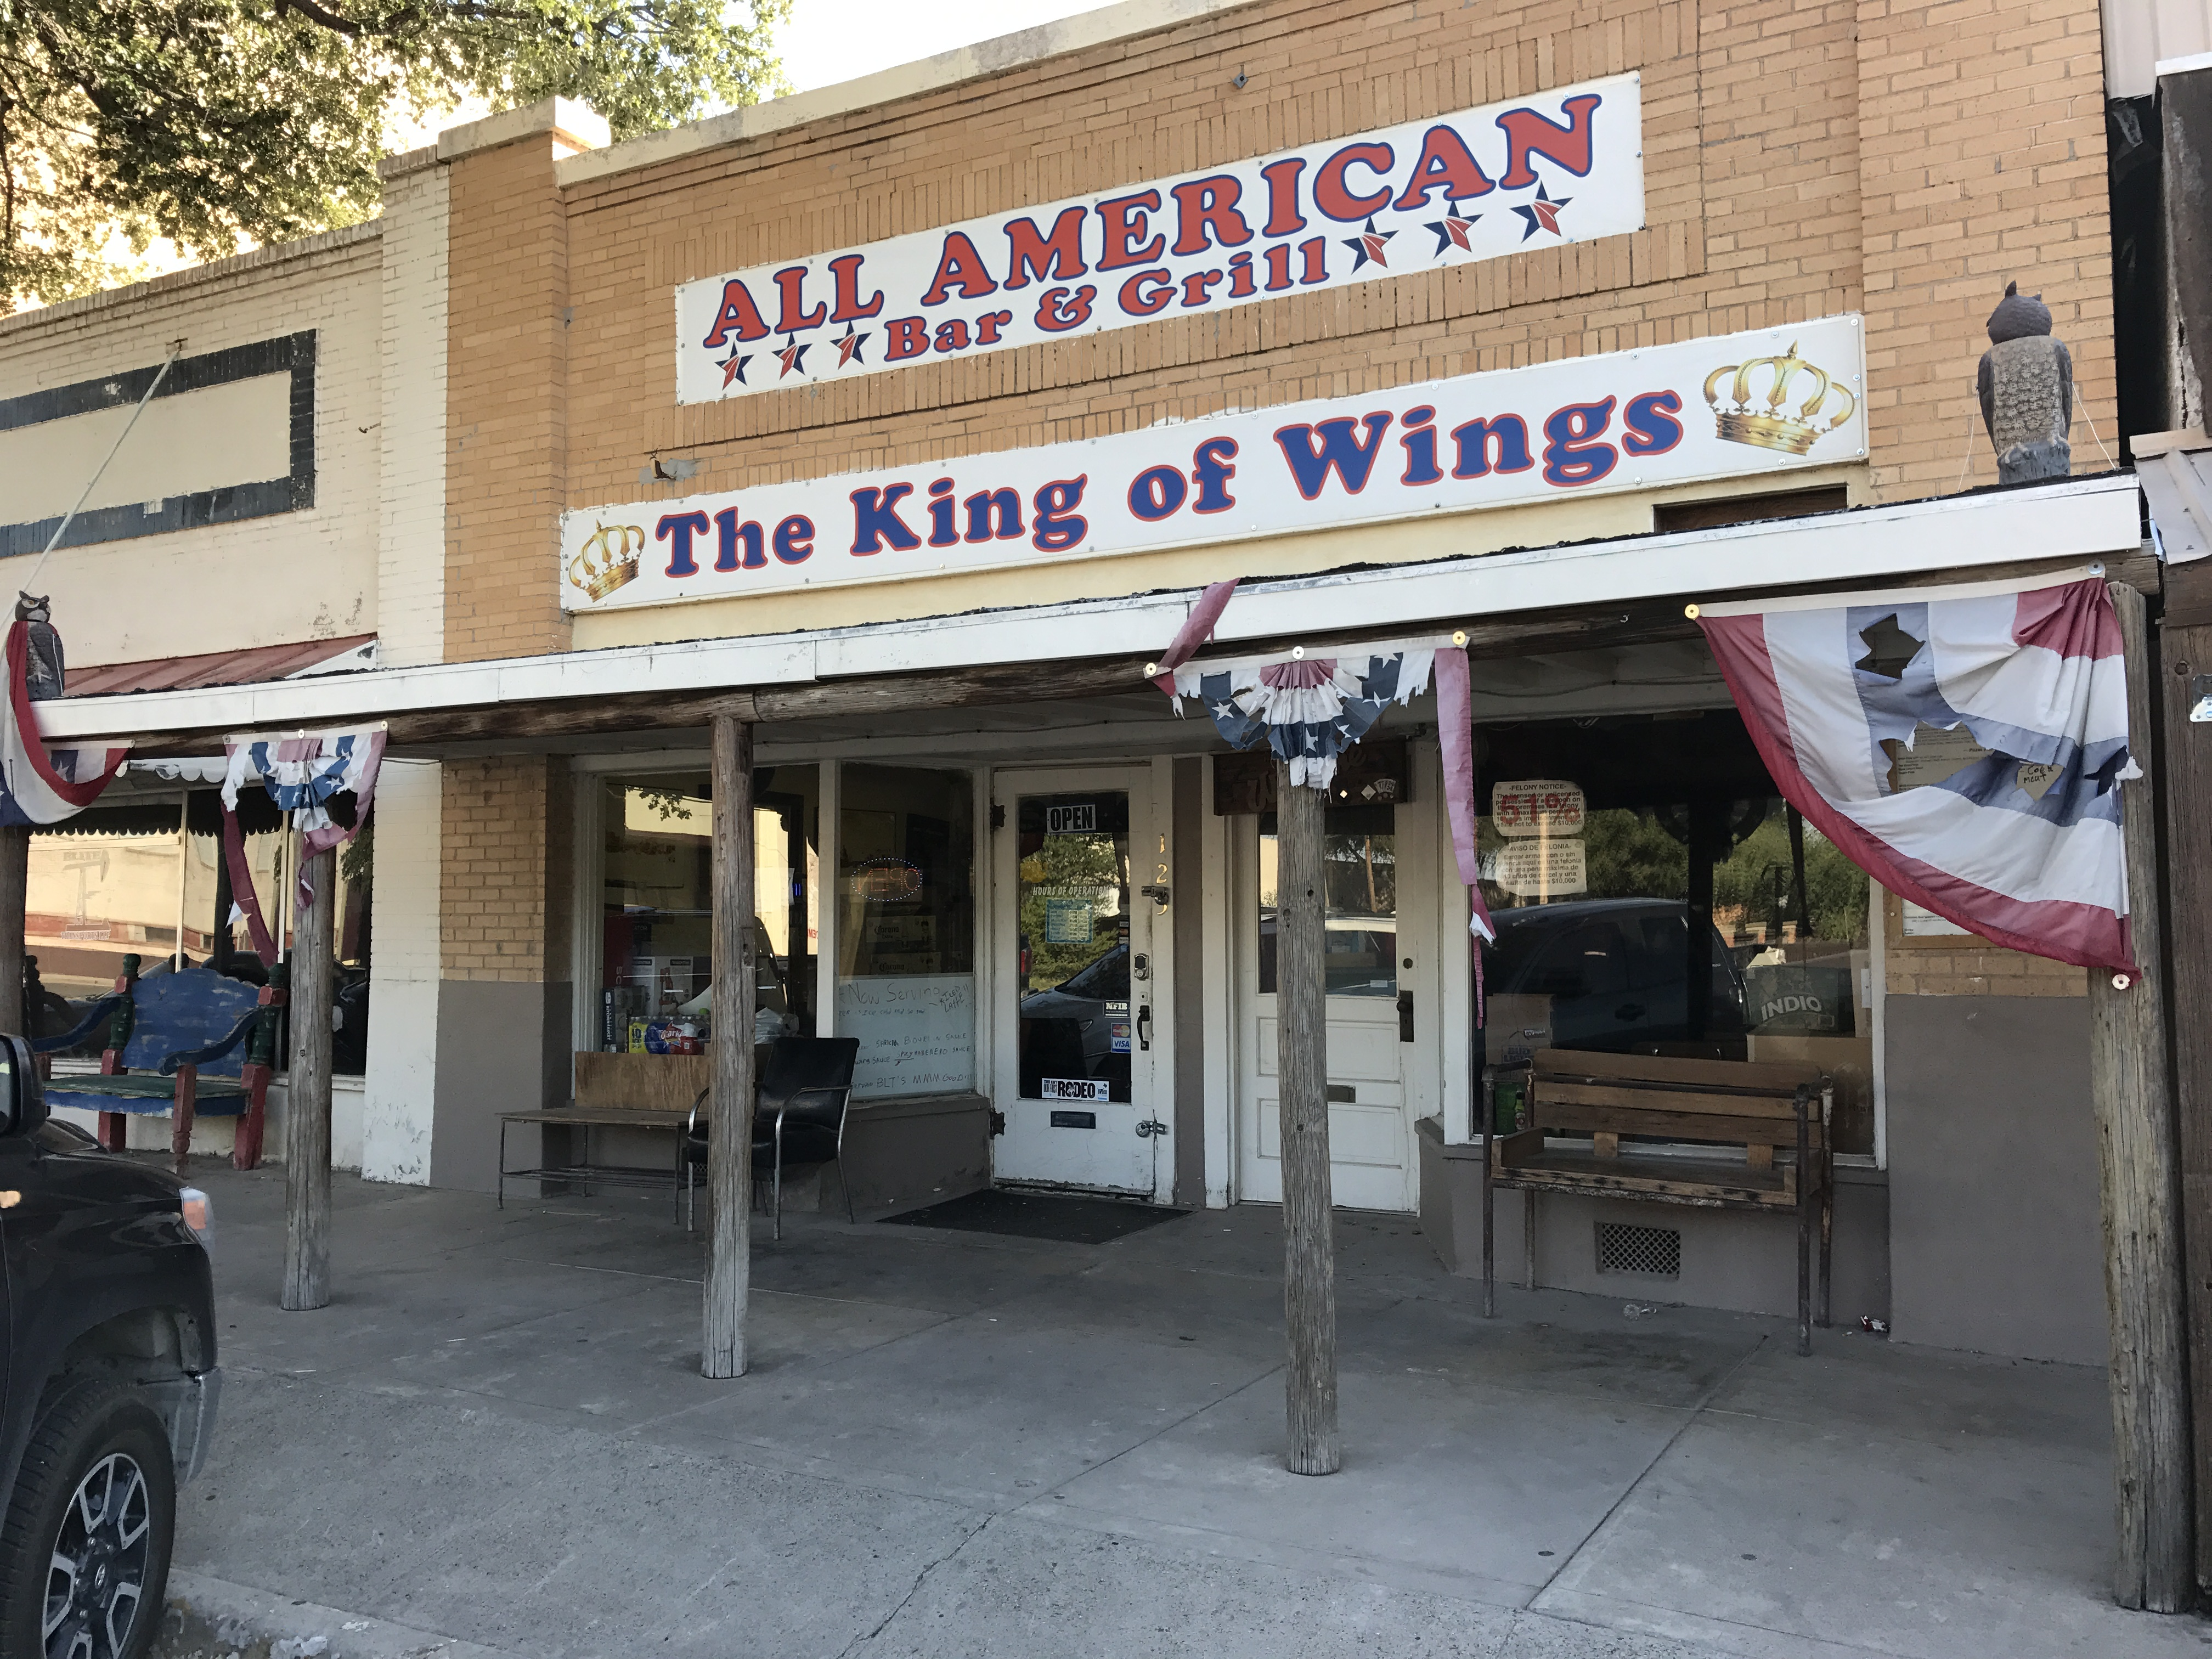 All american bar and grill explore texas - American grill restaurant ...